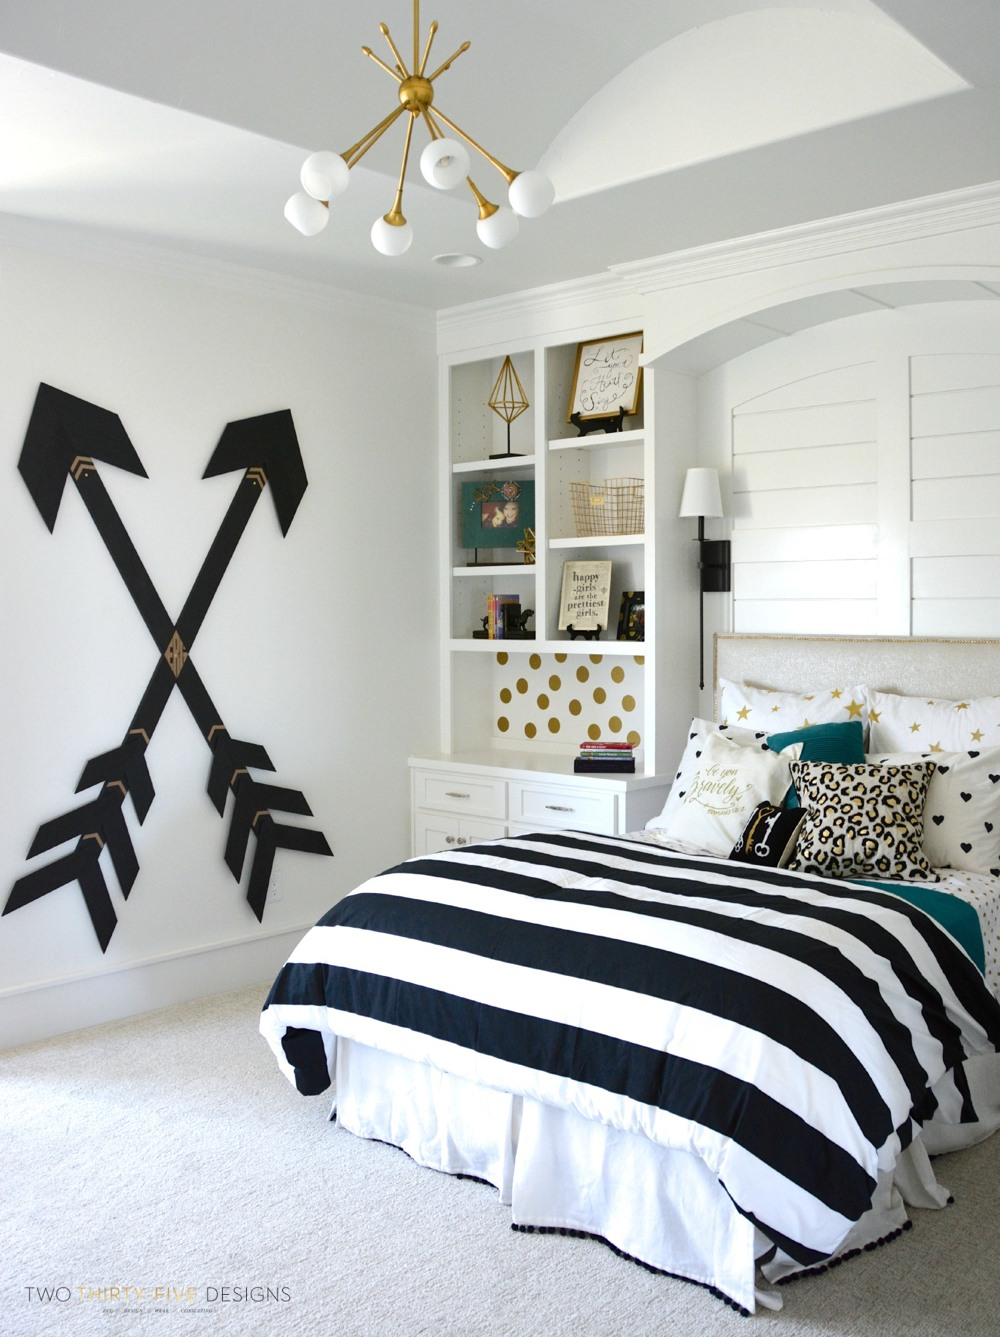 Bedroom Ideas Teen Girls Part - 18: Pottery Barn Teen Girl Bedroom With Wooden Wall Arrows